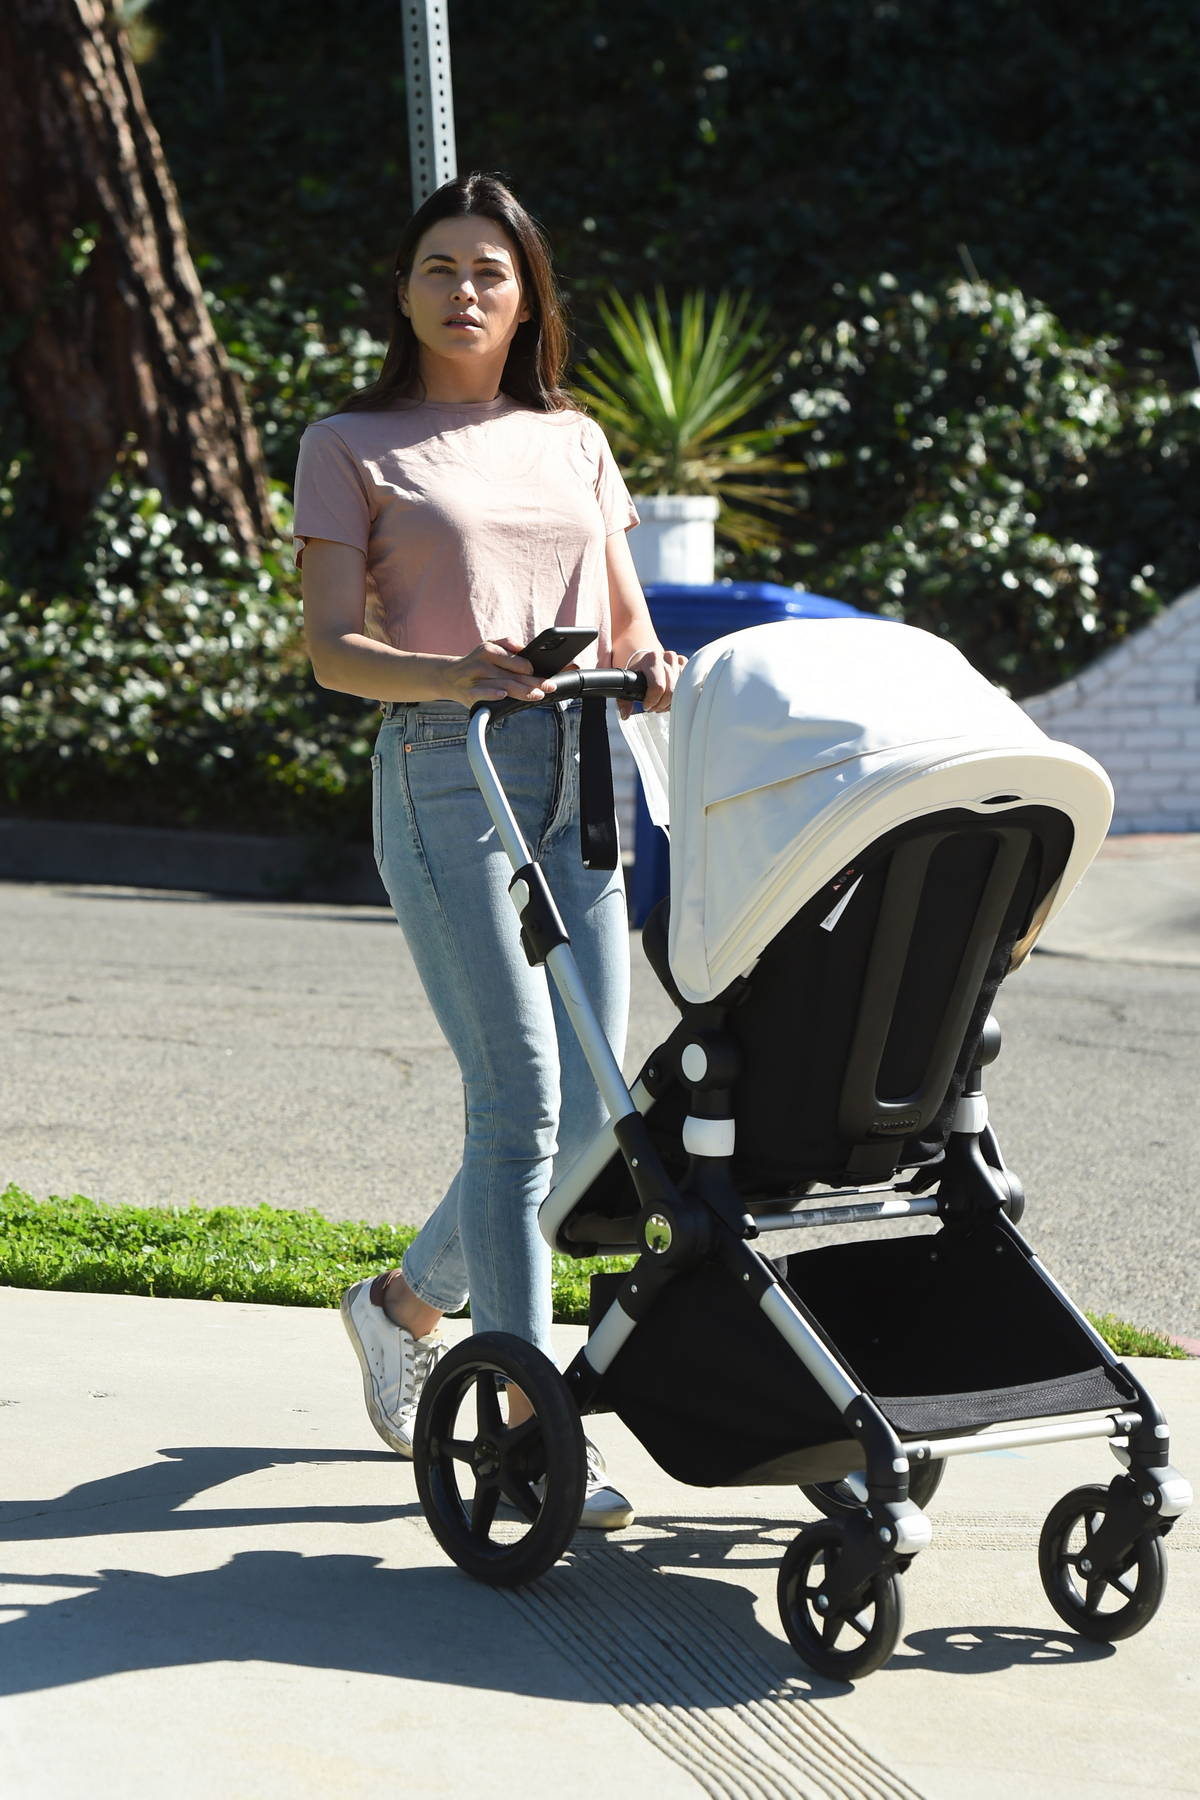 Jenna Dewan steps out makeup free as she takes her son out for stroll in Los Angeles